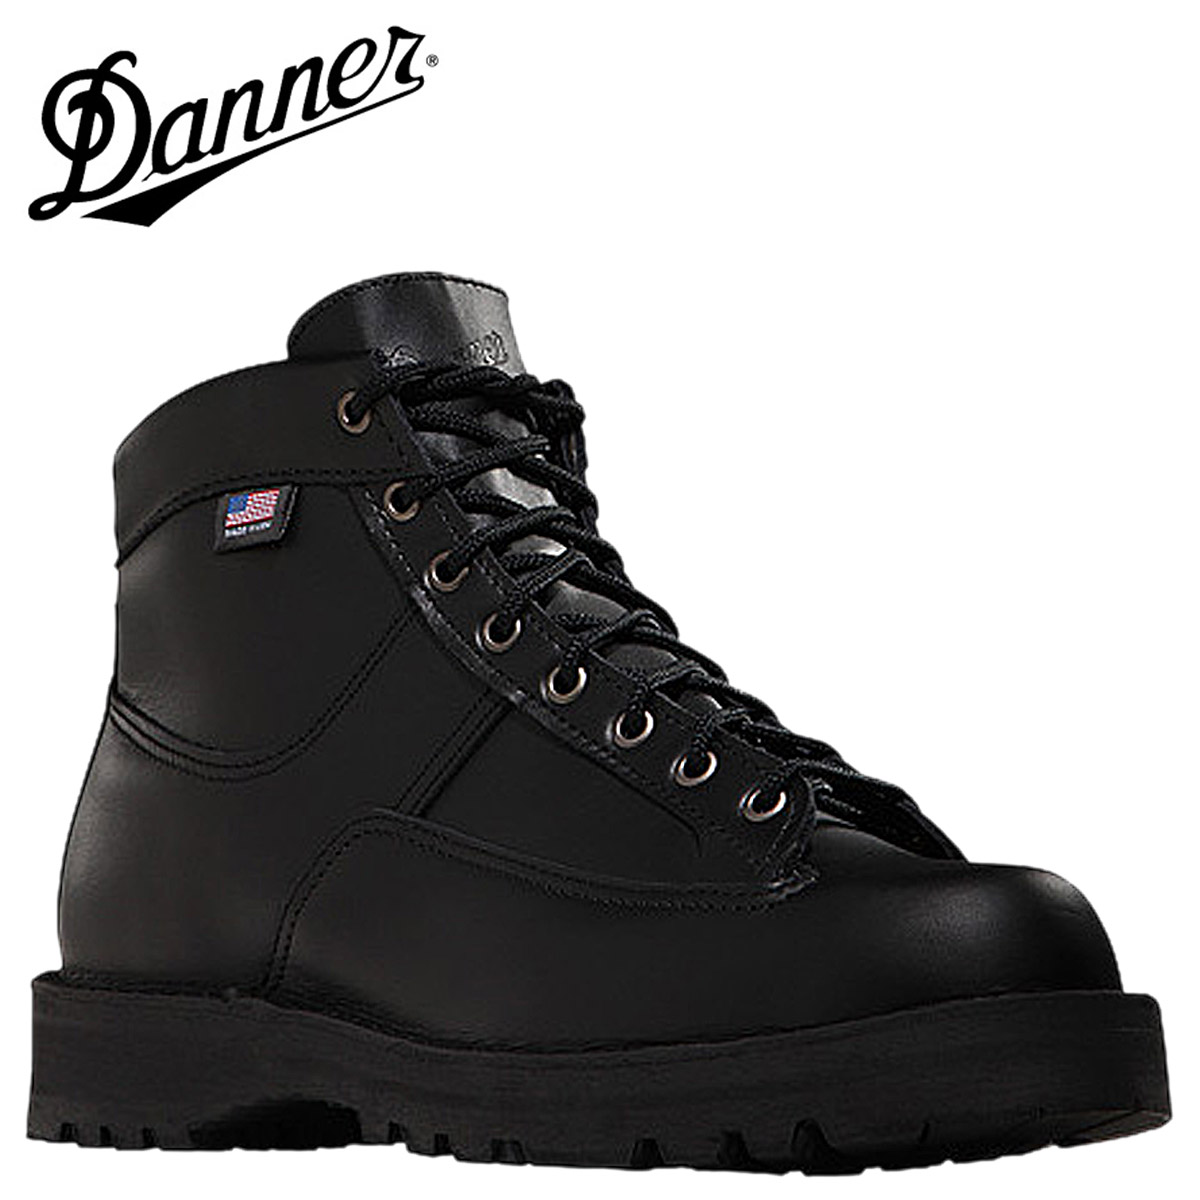 danner shoes men black